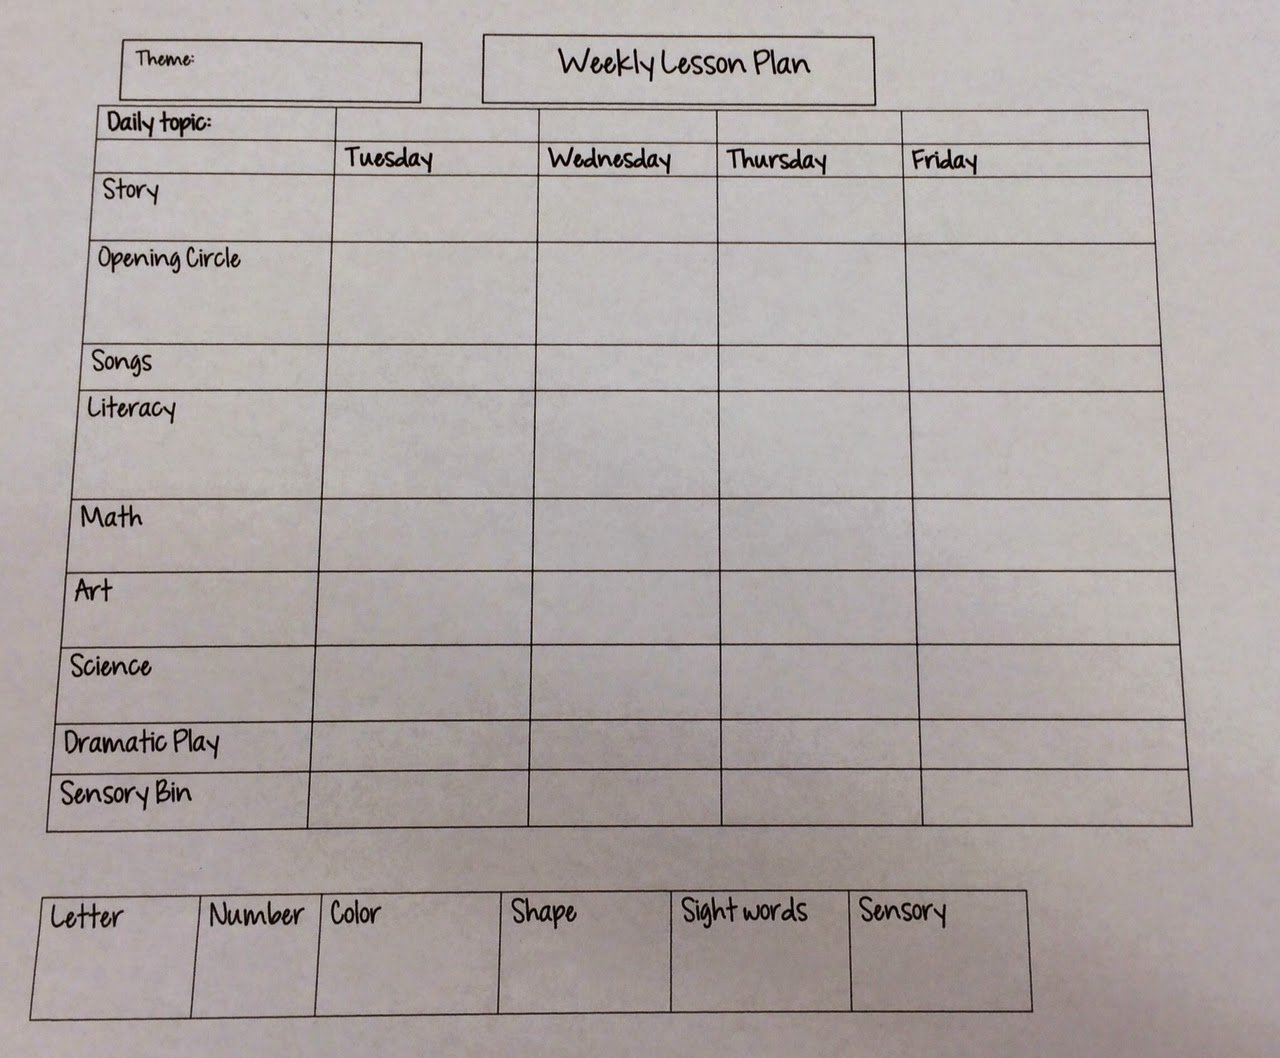 Daycare Lesson Plan Template Awesome Miss Nicole S Preschool Weekly Lesson Plan Template